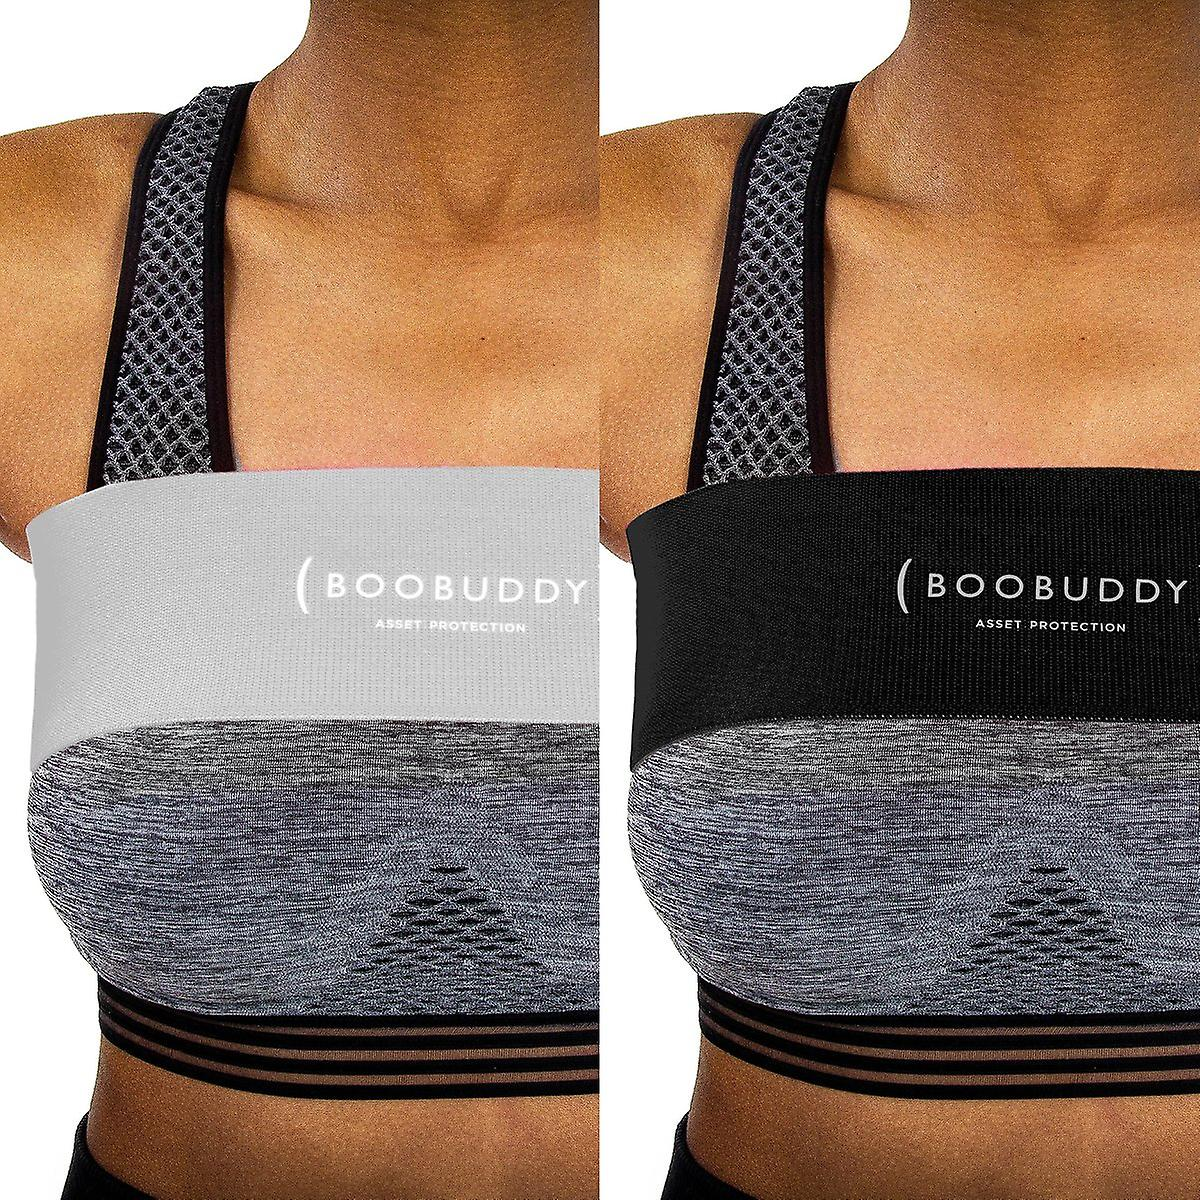 Boobuddy breast support band bundle – grey & black